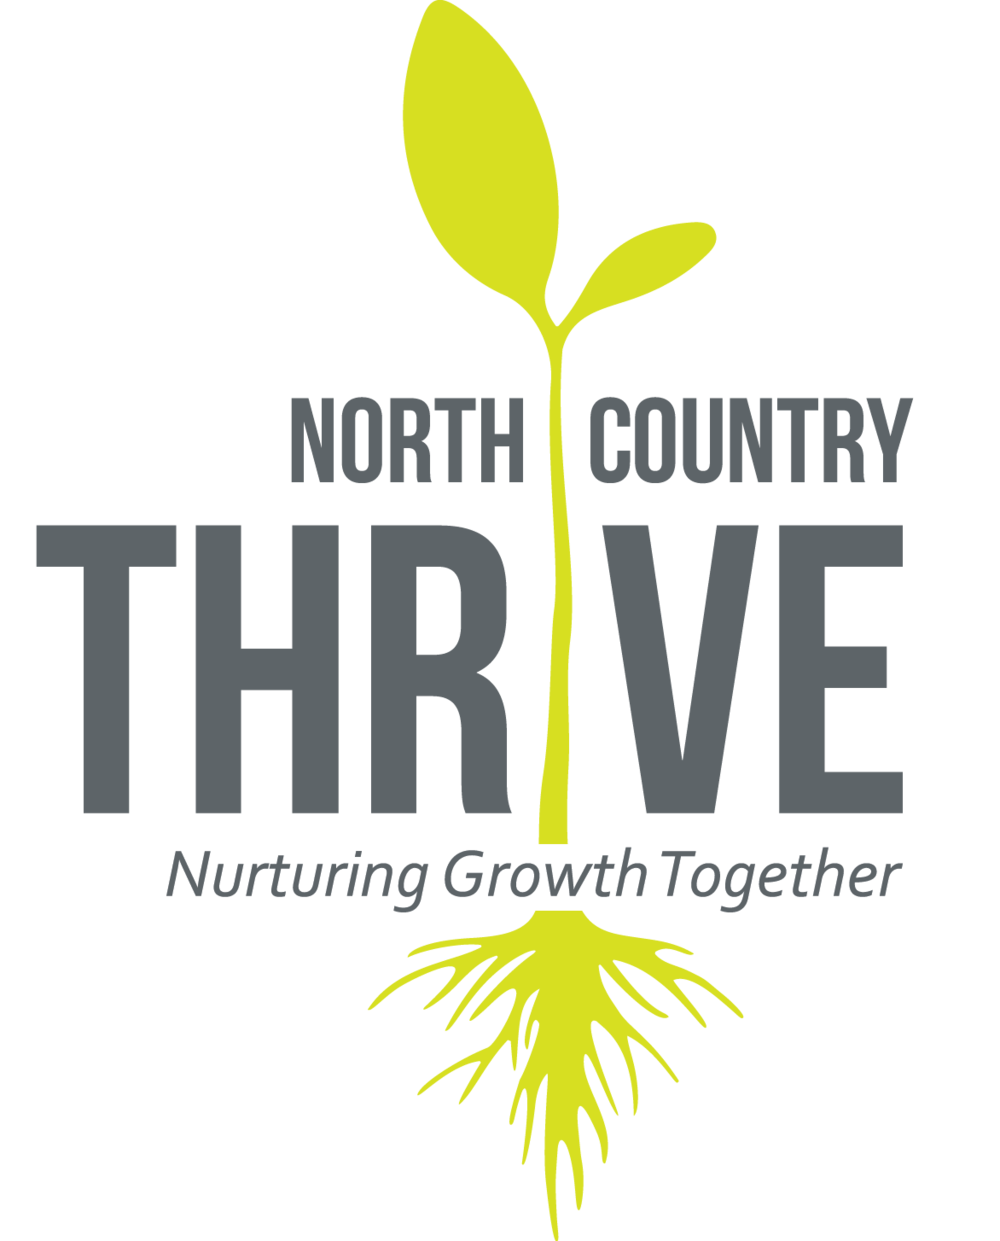 Thrive logo transparent.png